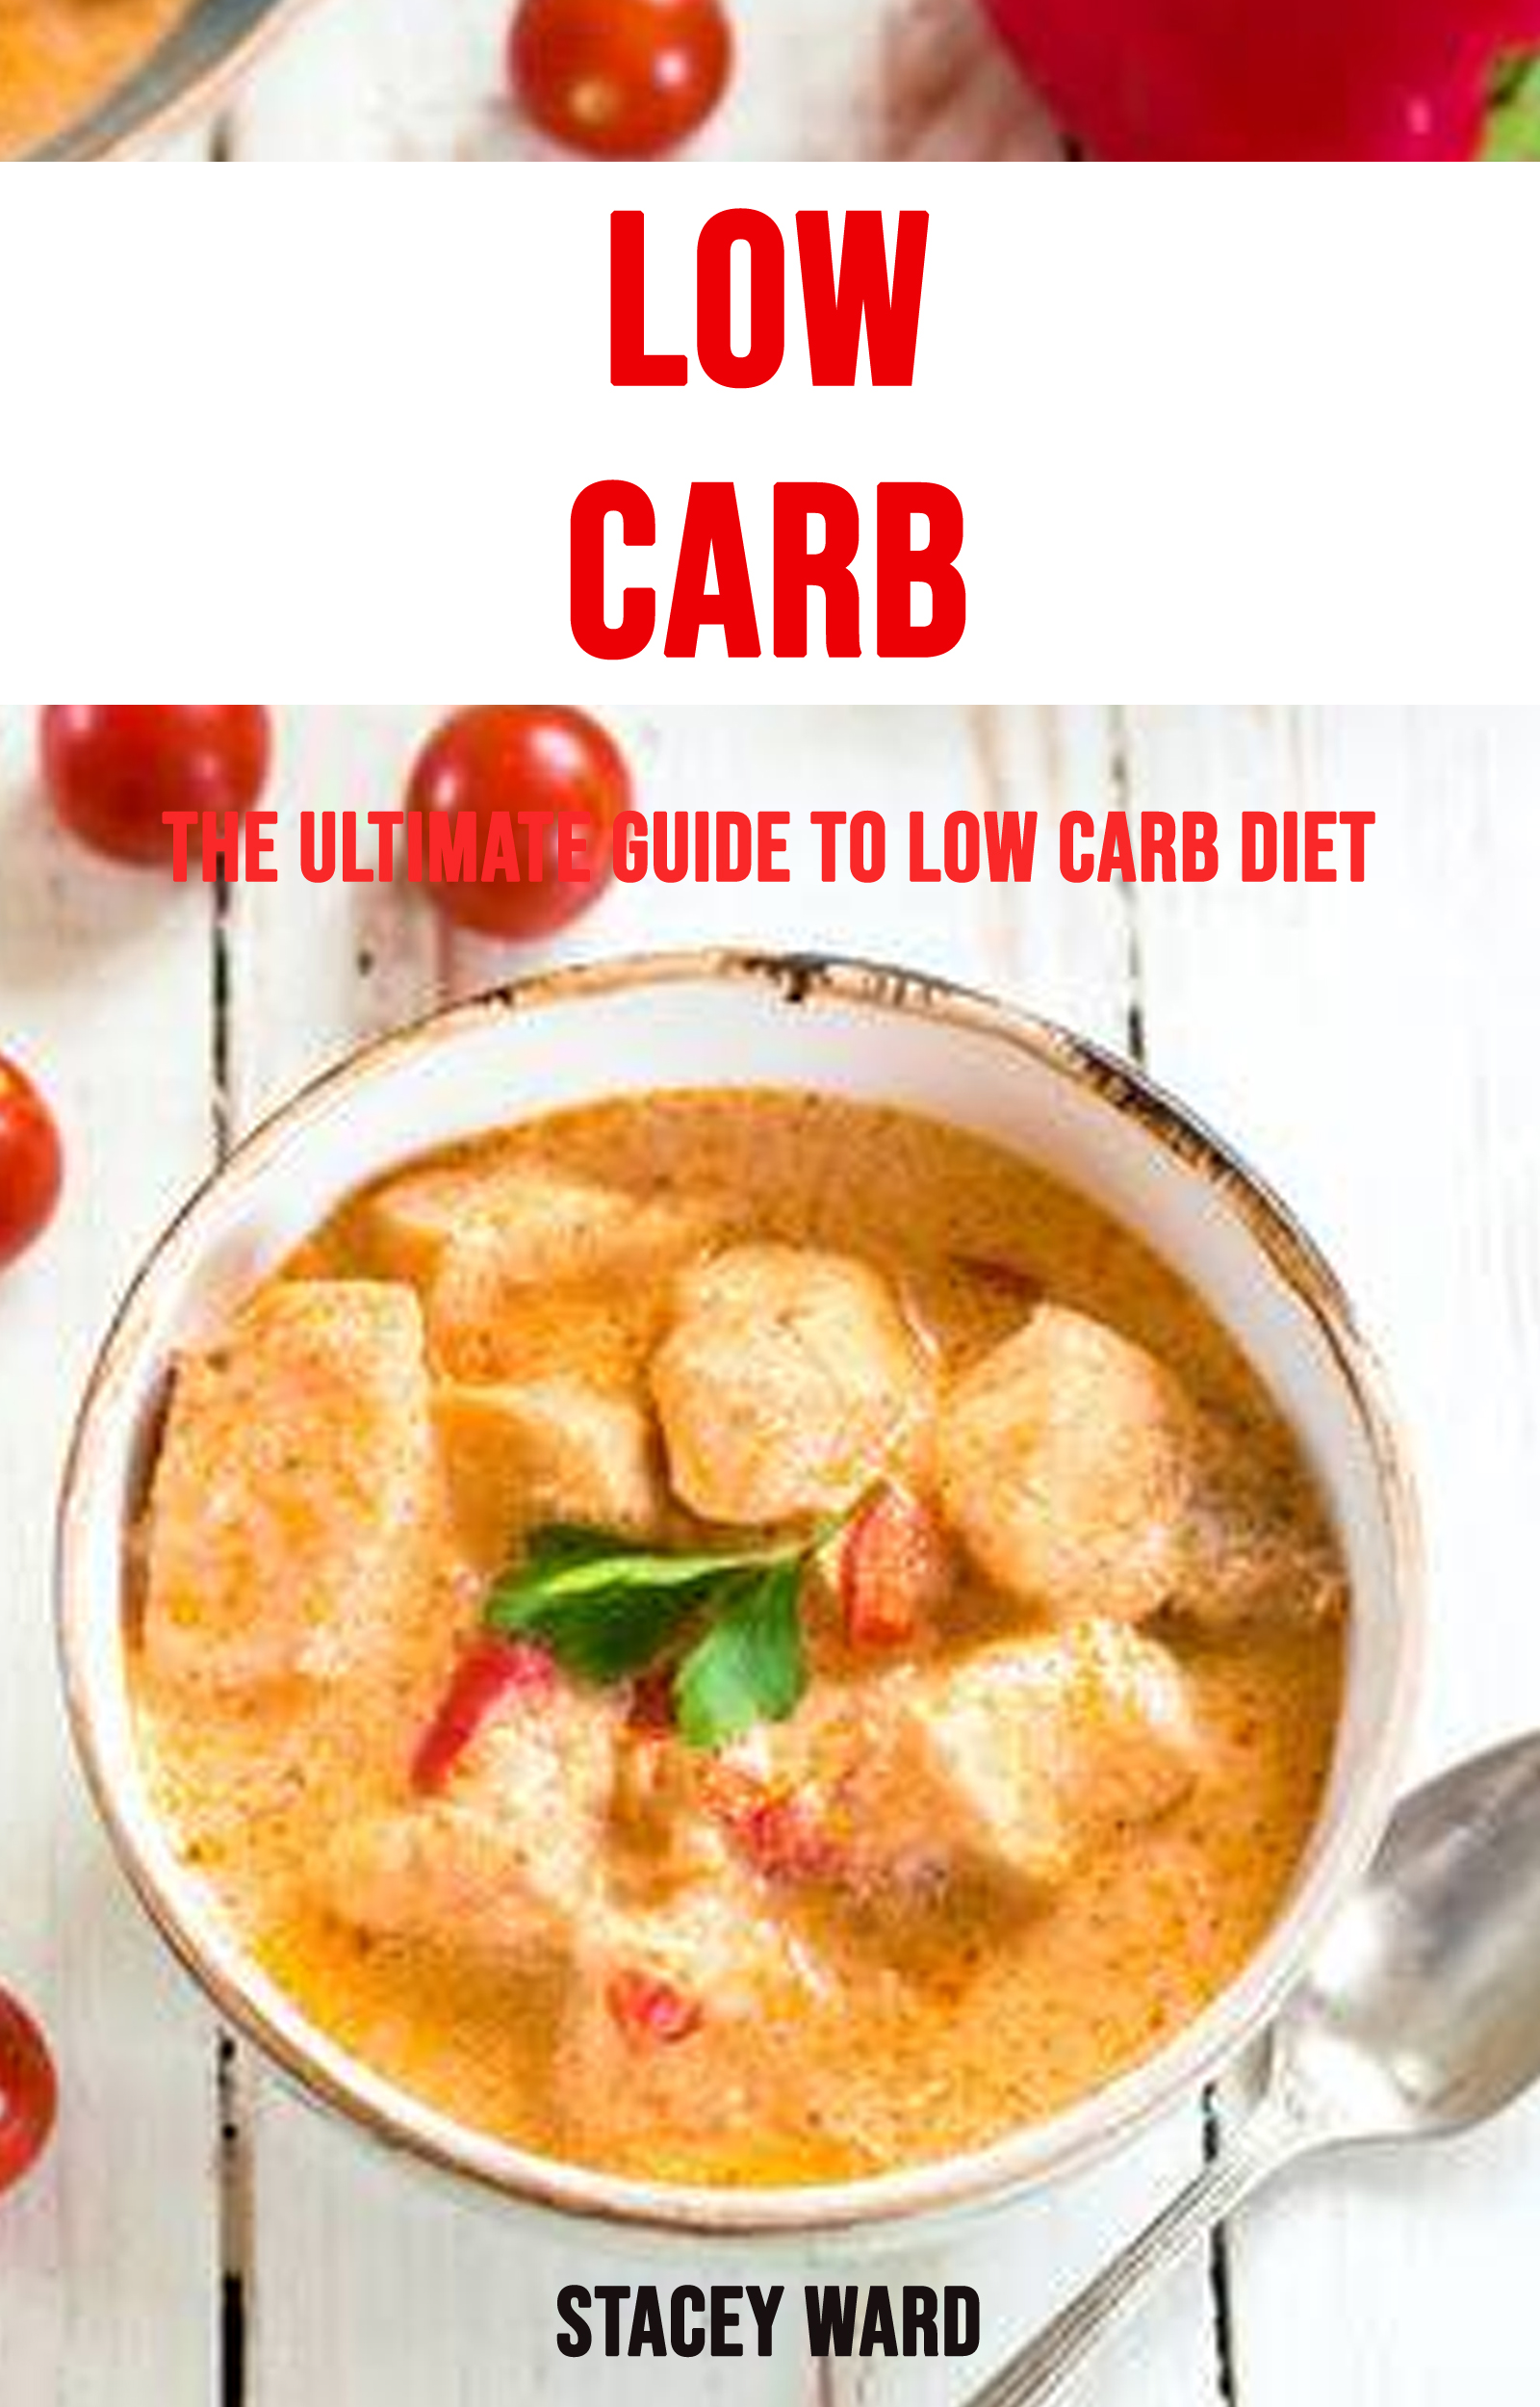 Low carb: the ultimate guide to low carb diet